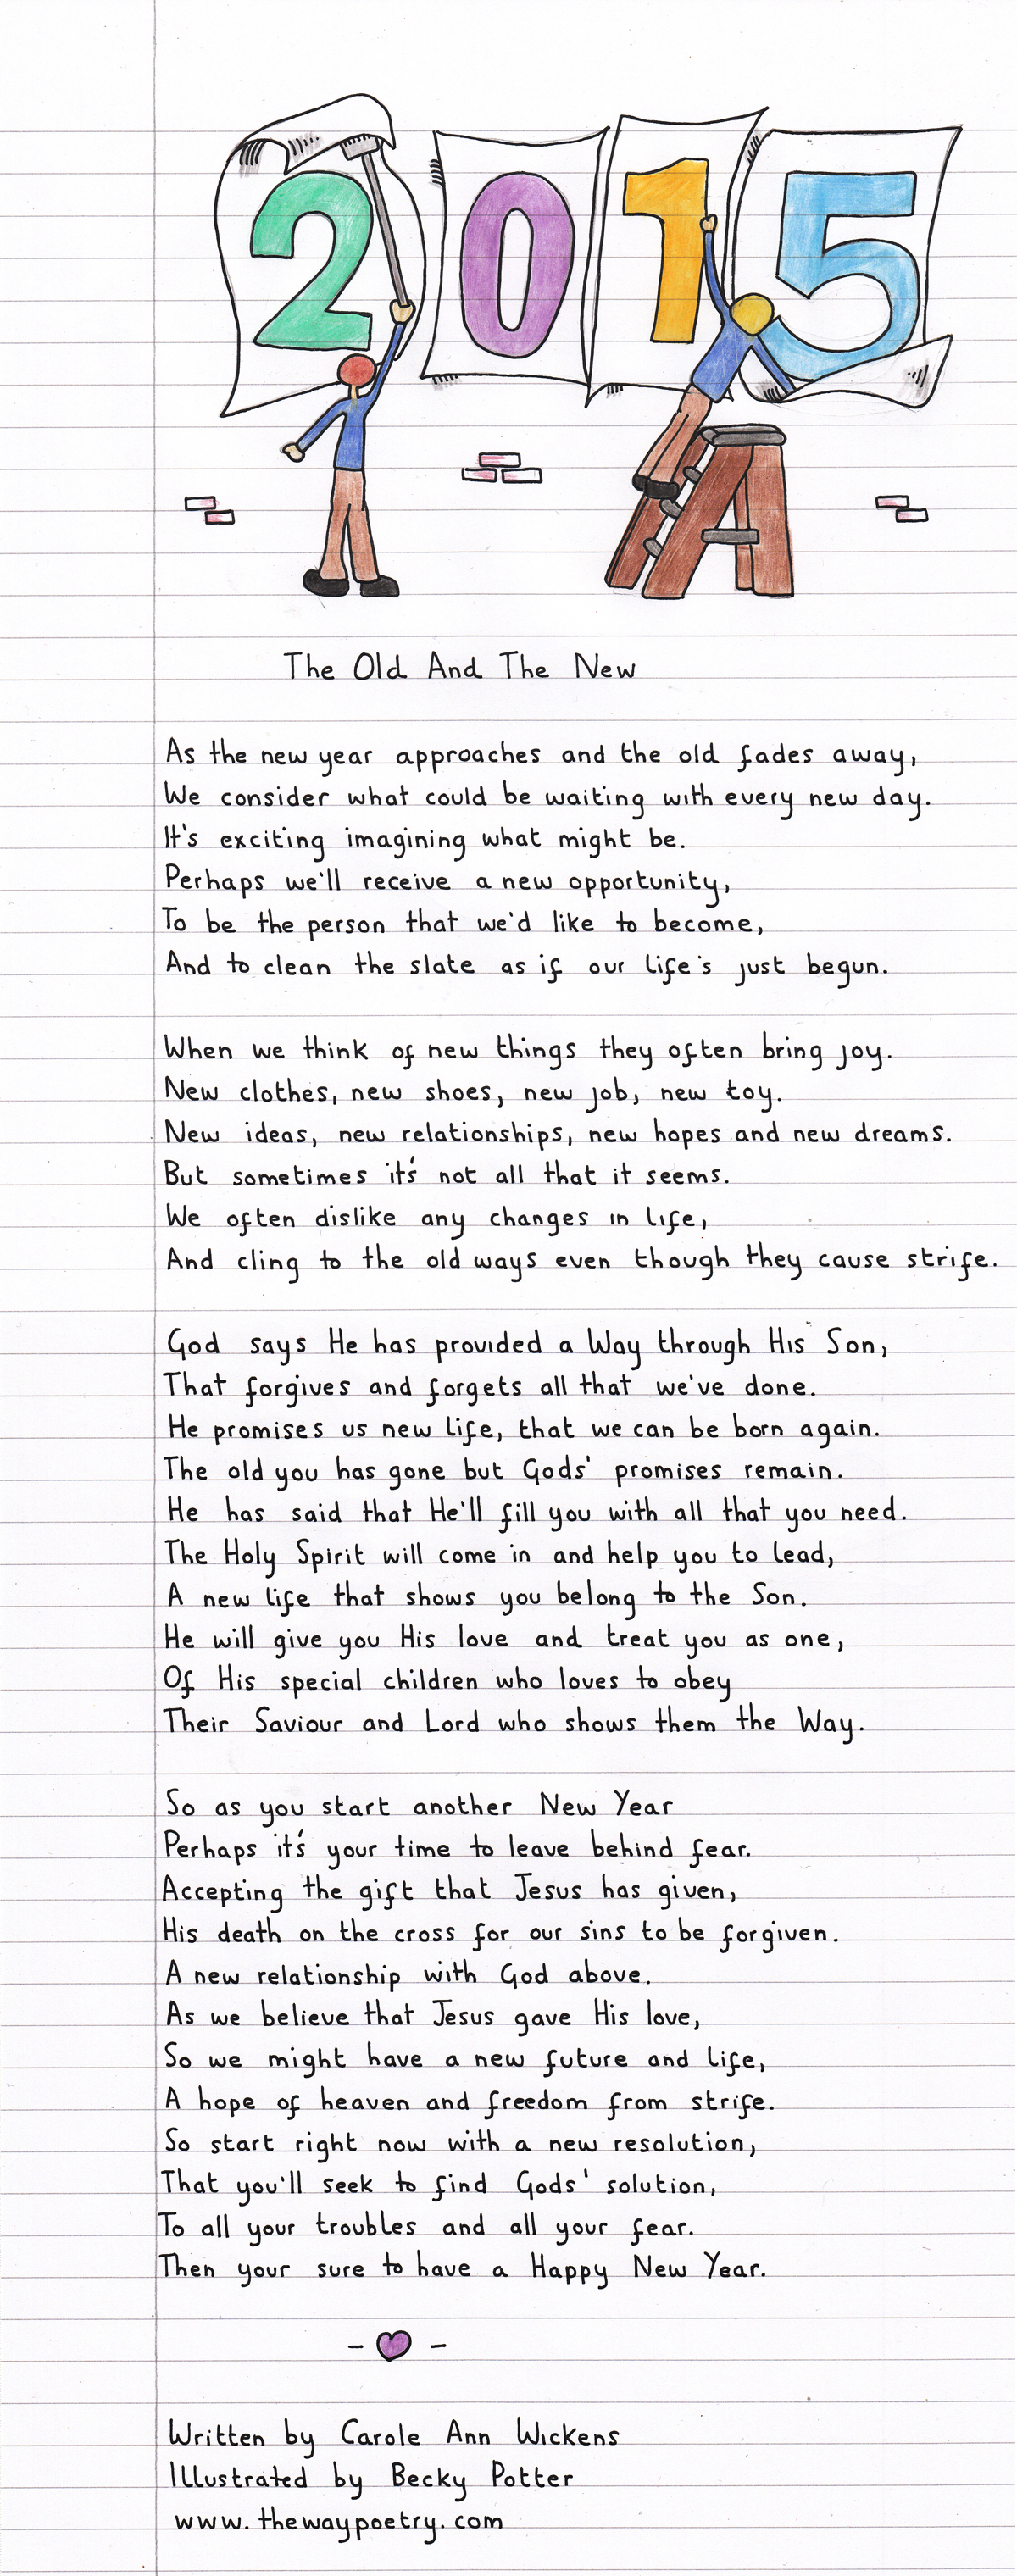 The Old And The New by Carole Ann Wickens